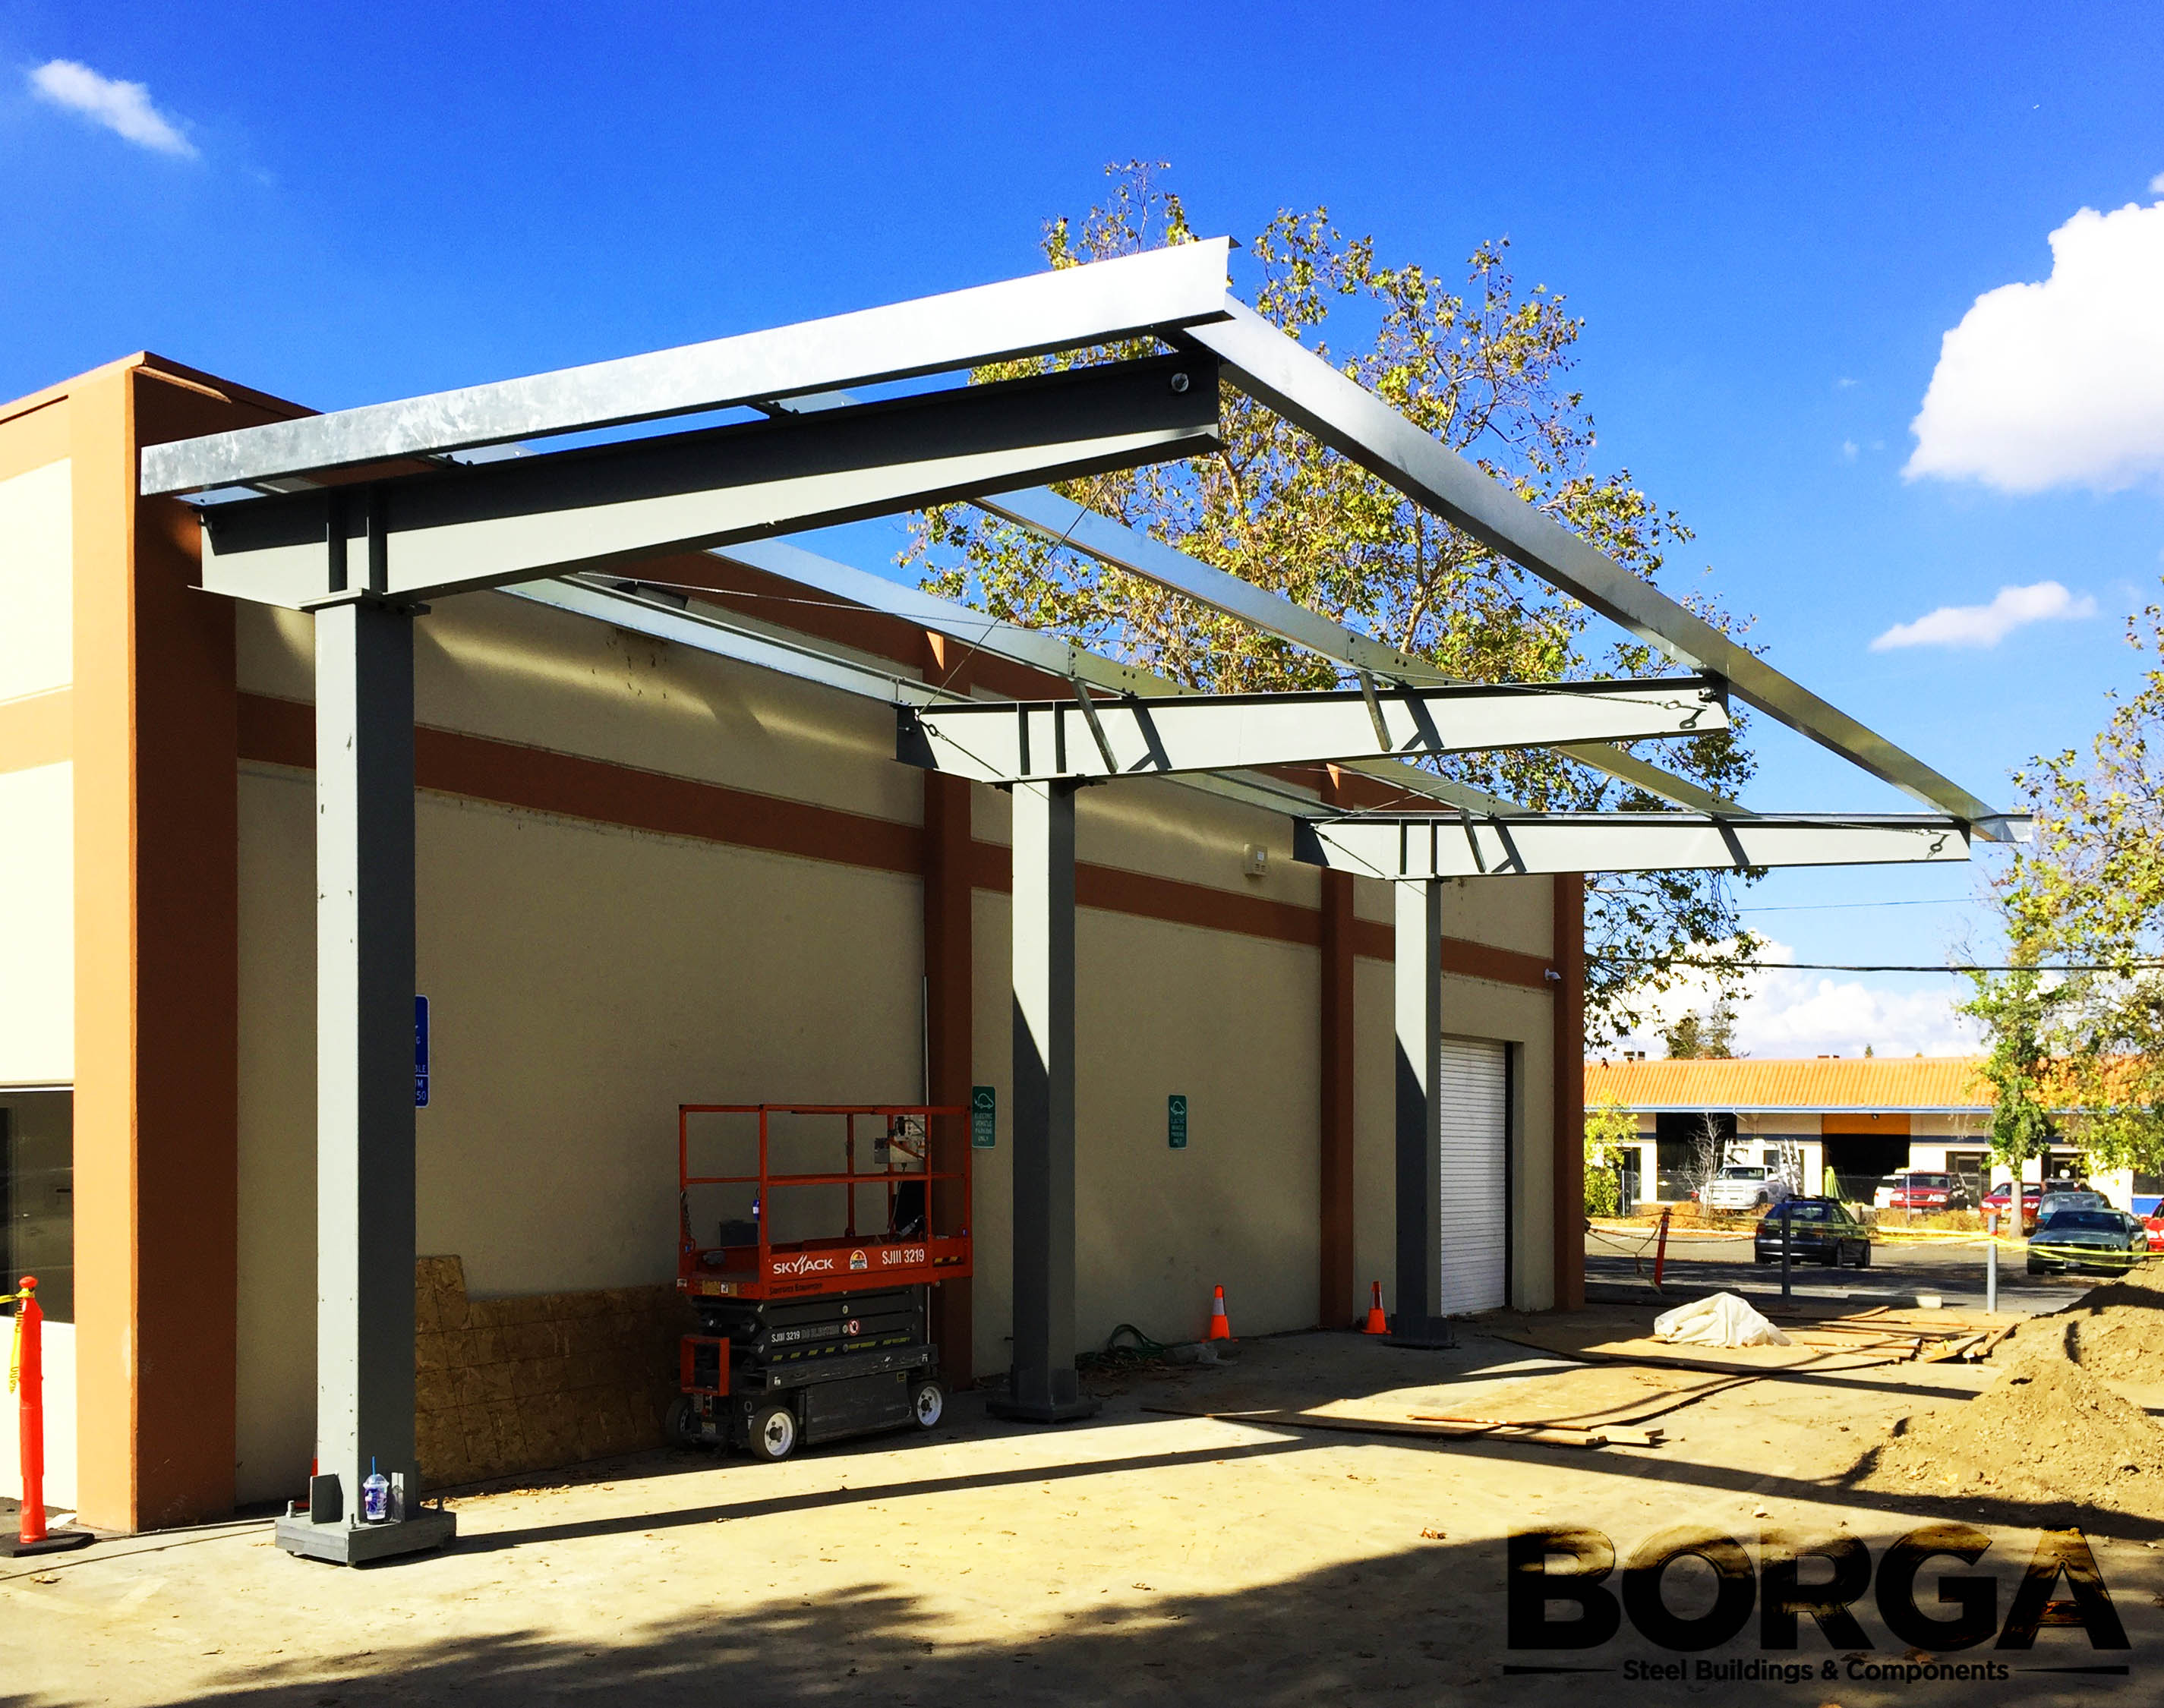 borga fresno ca steel metal building carport solar environment parking structure 1